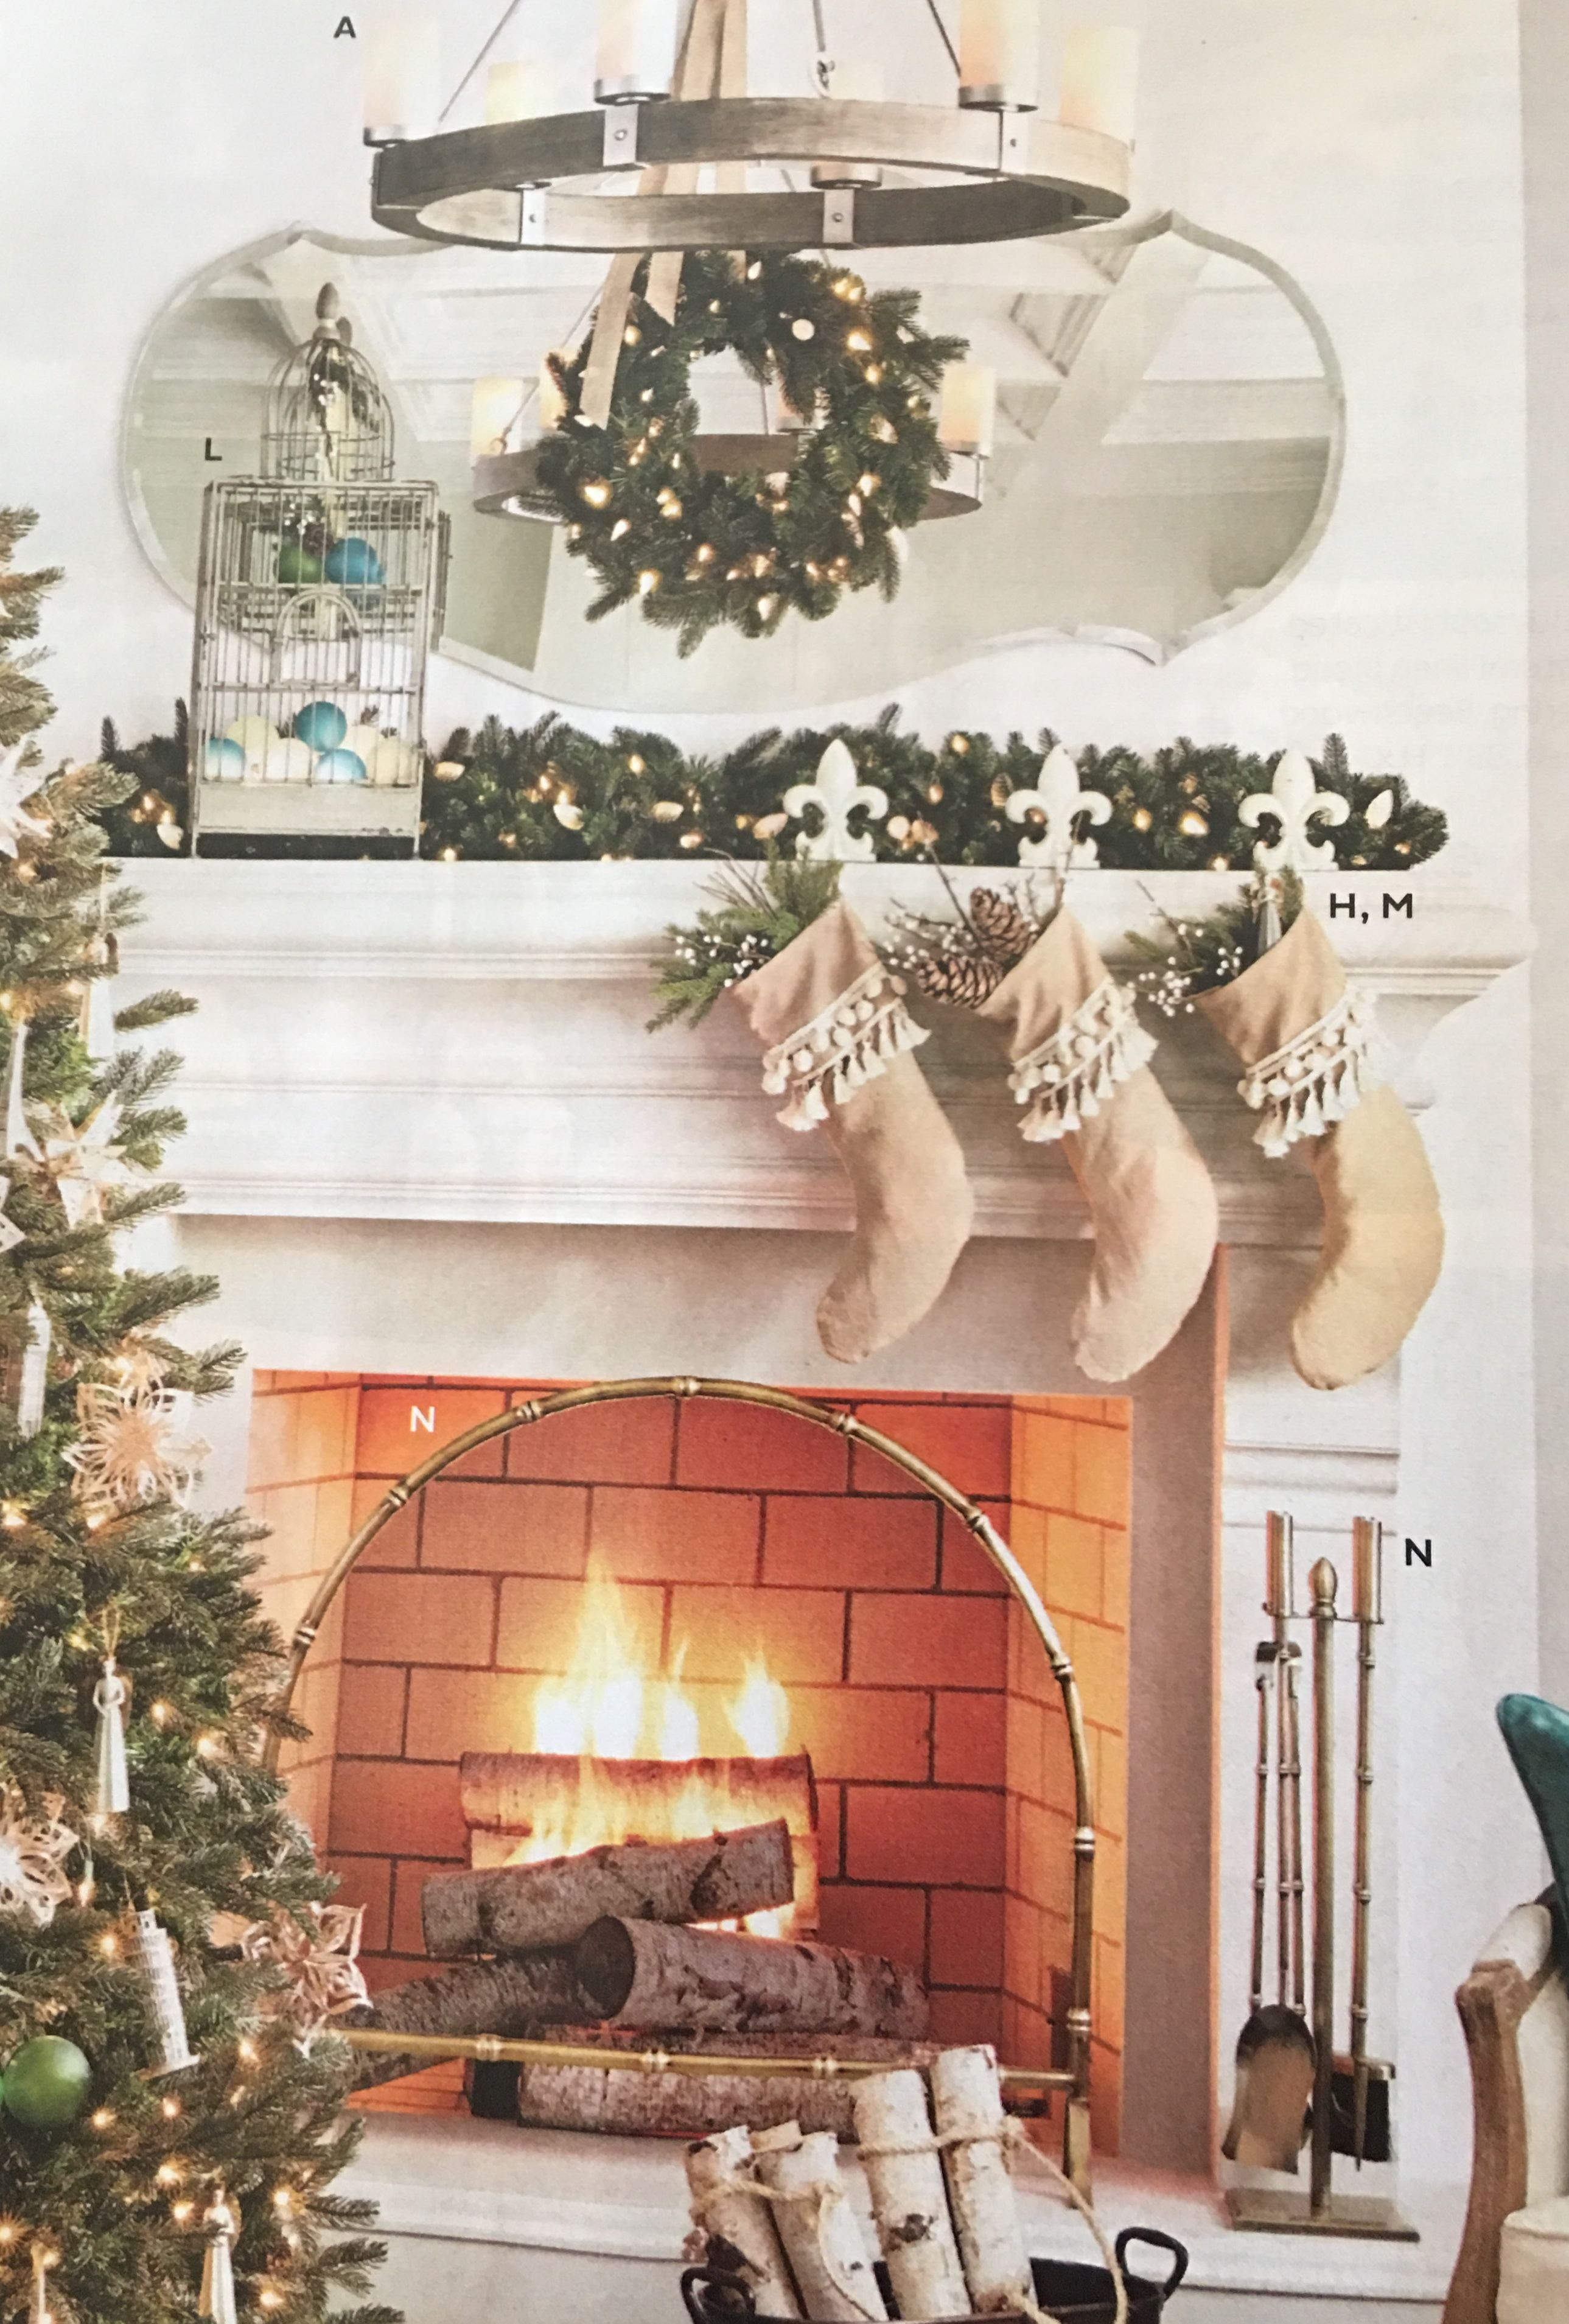 Pin by Tracy G White on Christmas decorations Pinterest